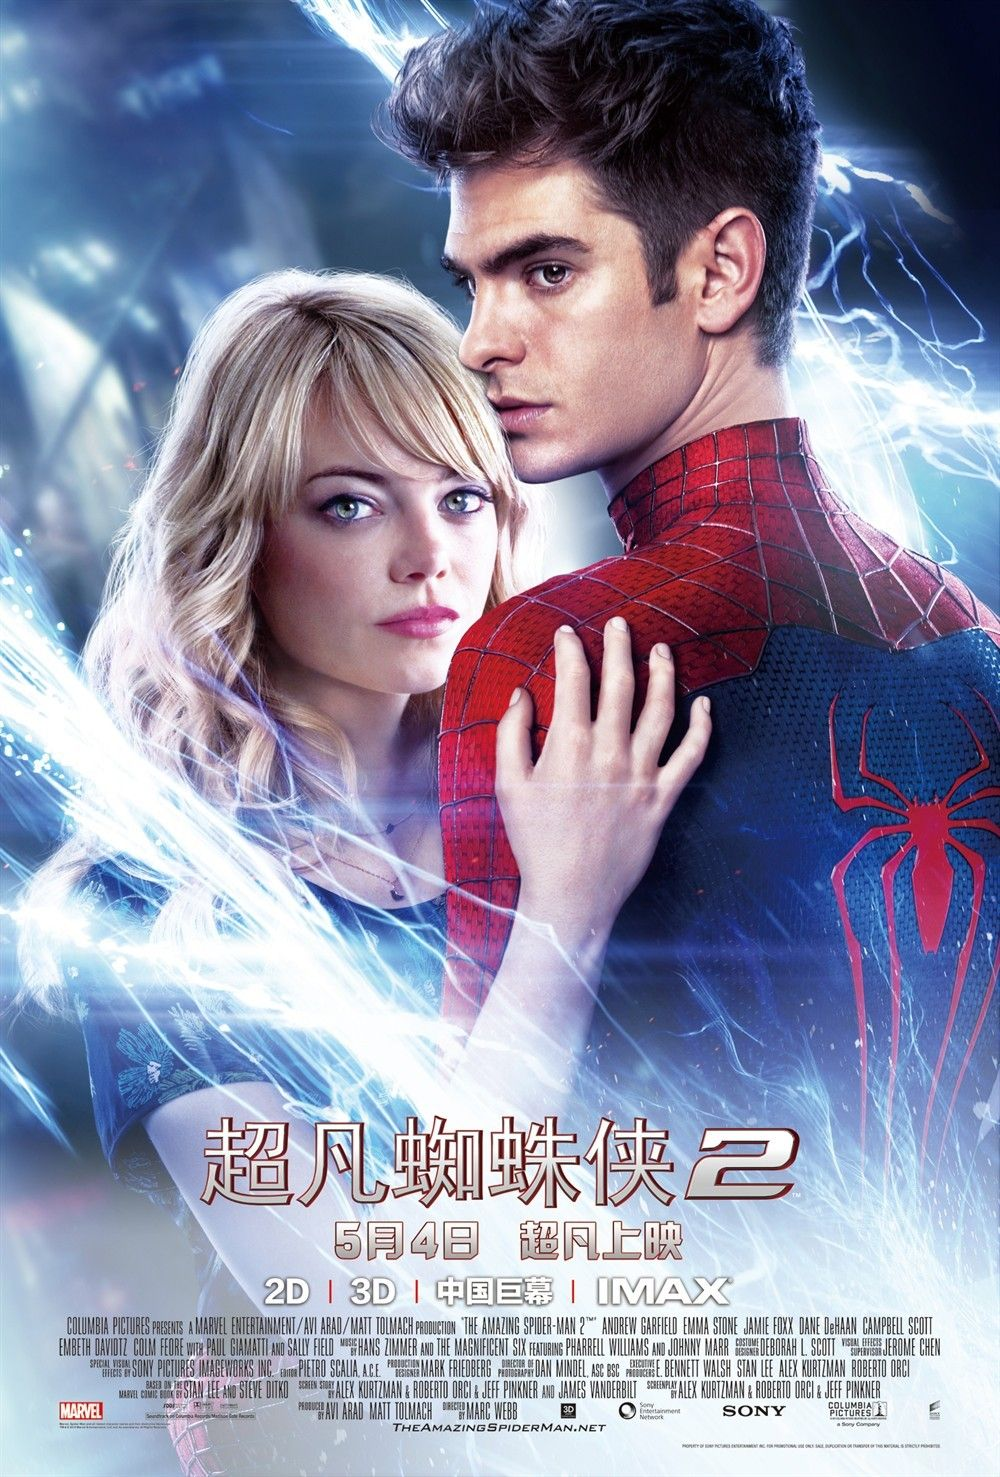 The Amazing Spider Man 2 Extra Large Movie Poster Image